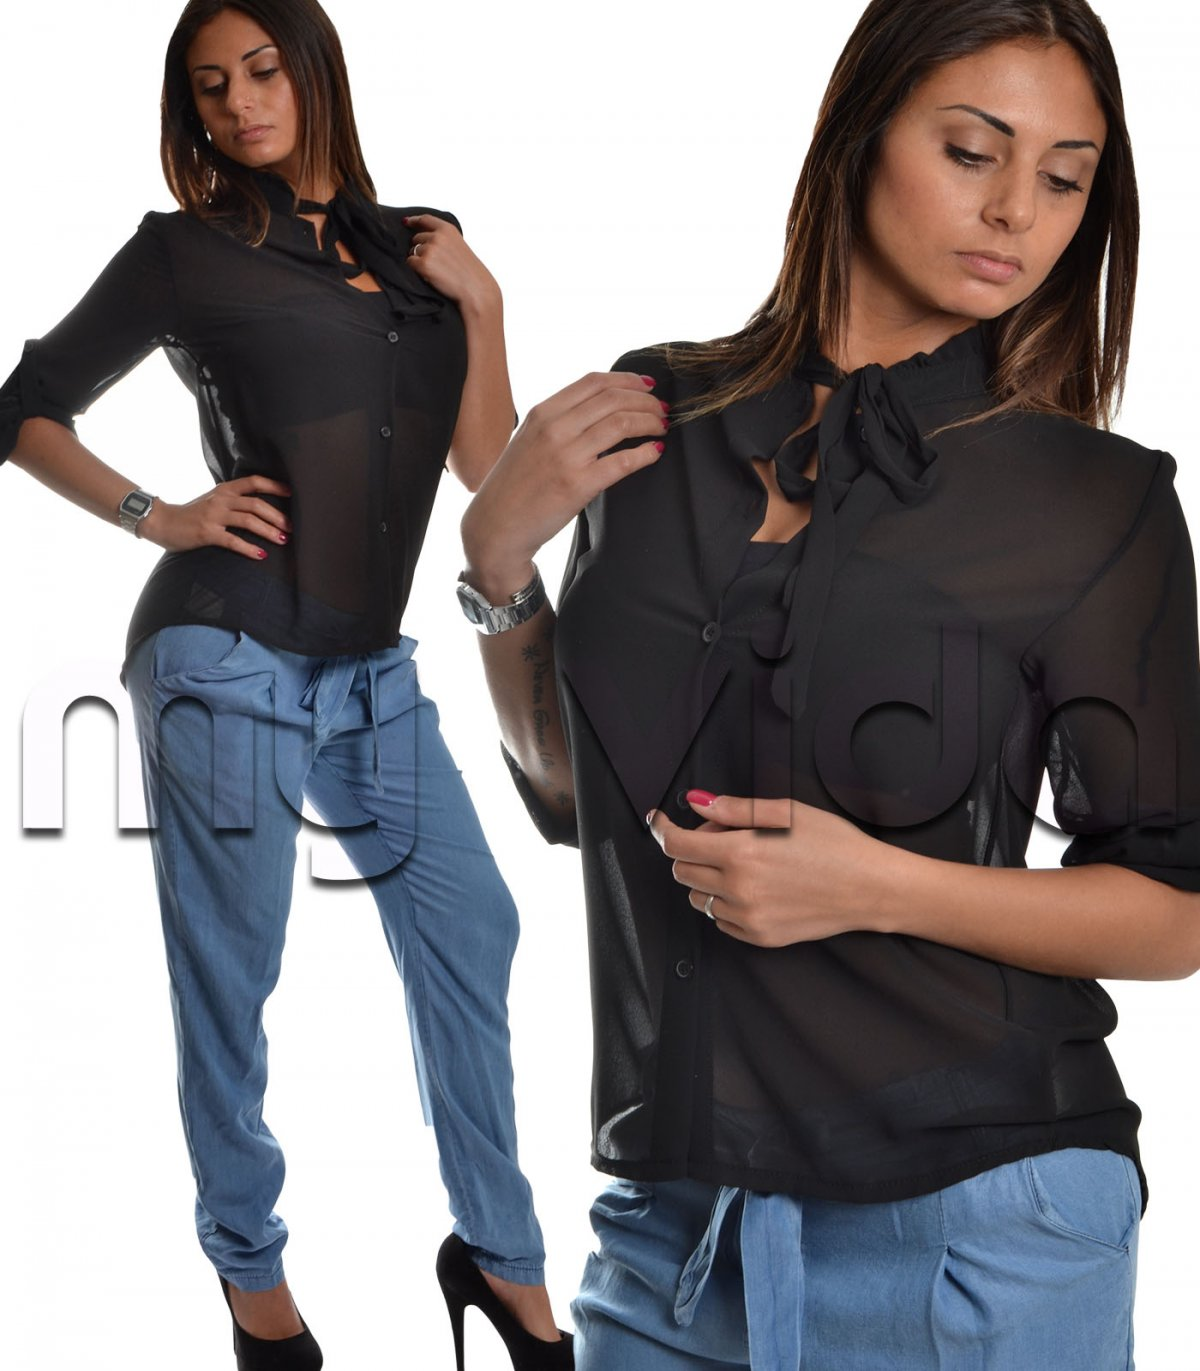 low priced 4f904 7492a Maglia chiffon donna camicia coprispalle nero | My Vida